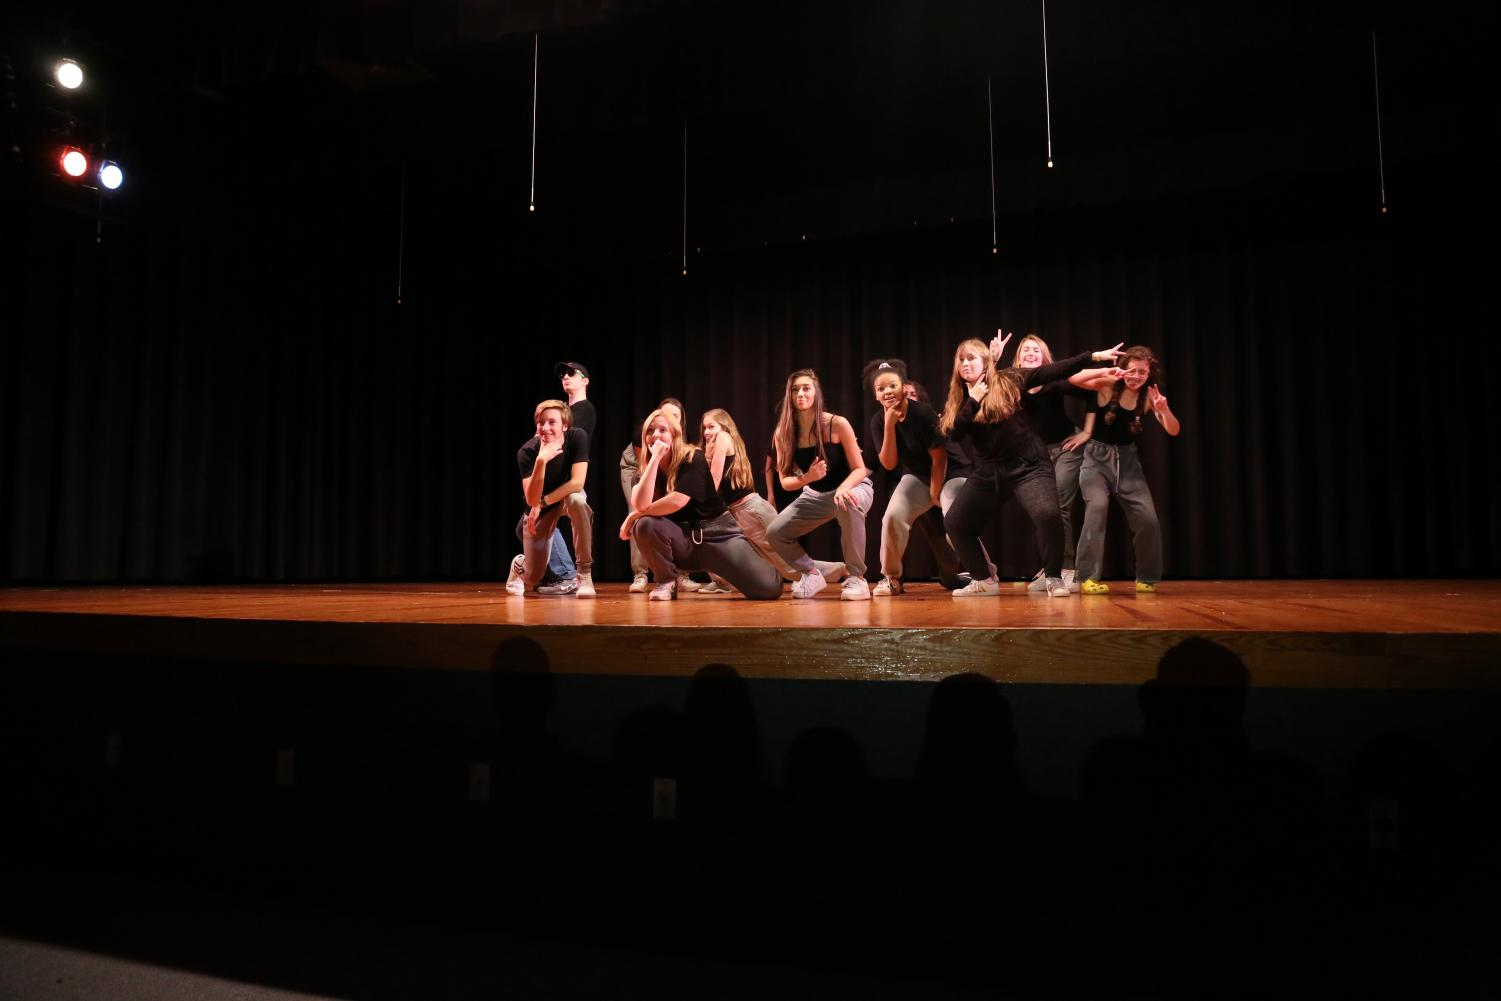 The Prowler throws it down at the Lip Sync.